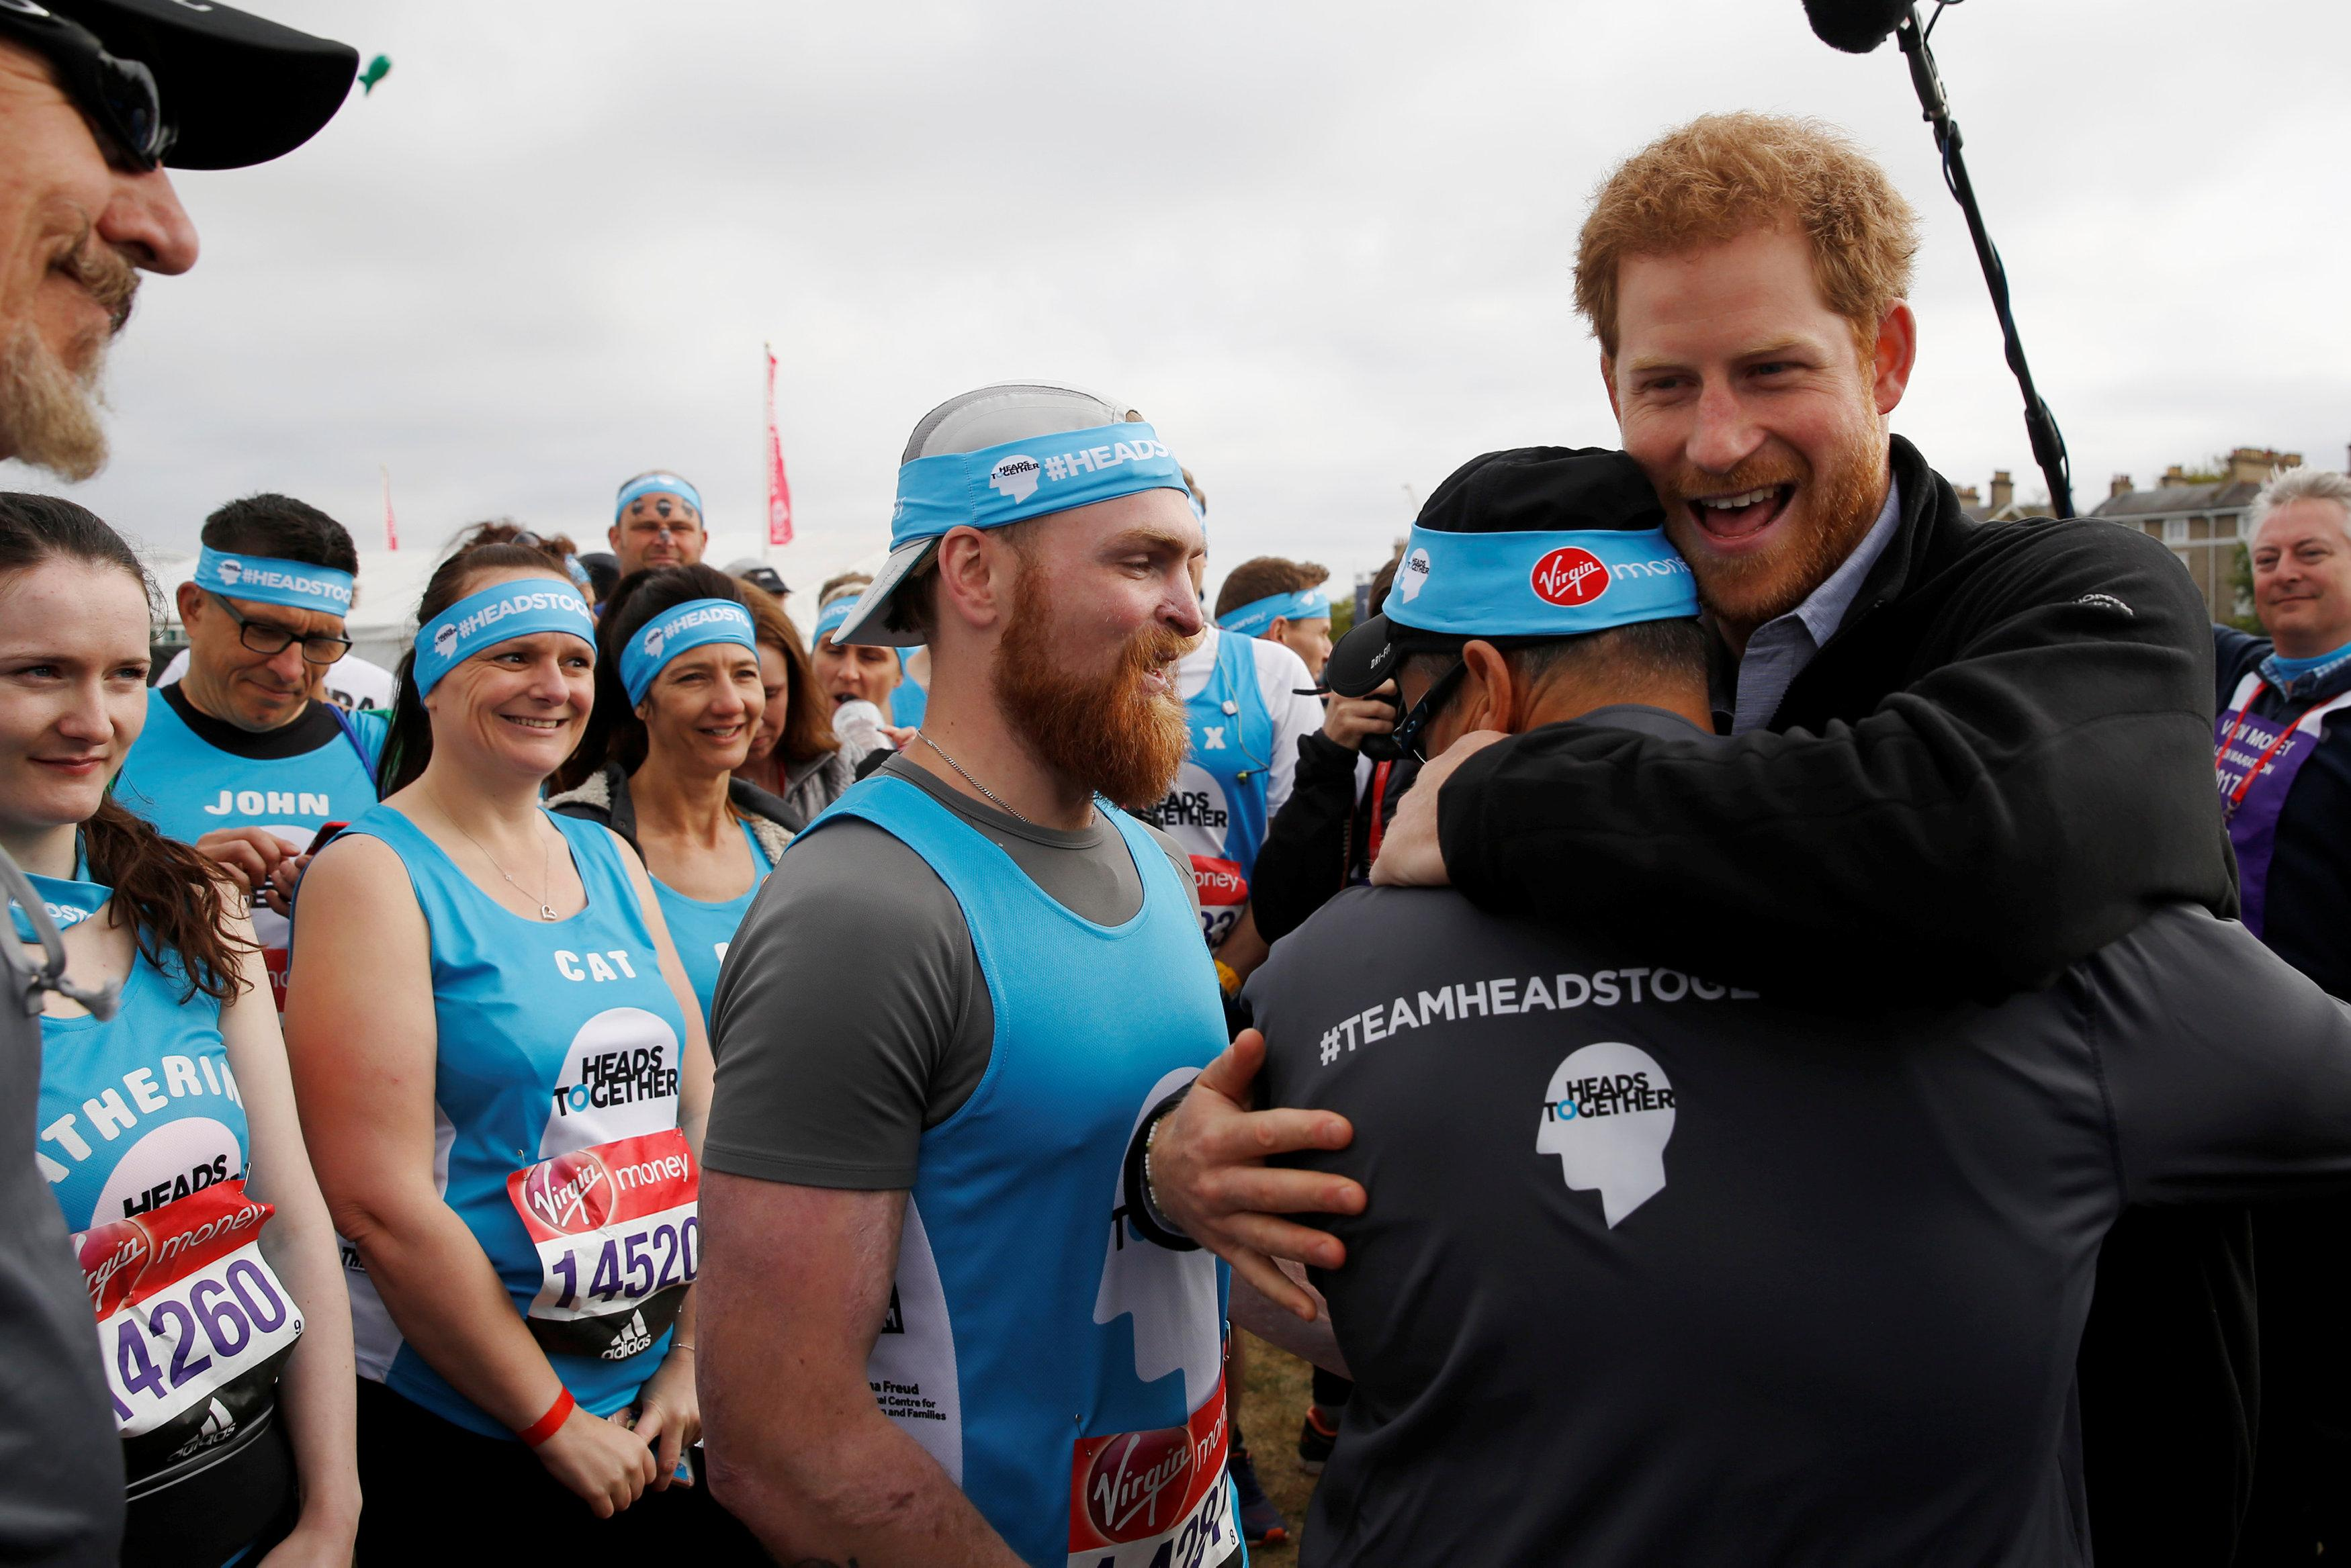 Chris Ship recalls Prince Harry telling him he sees sharing his own experience with mental health as a way of imparting his 'duty and service' (Picture: PA)